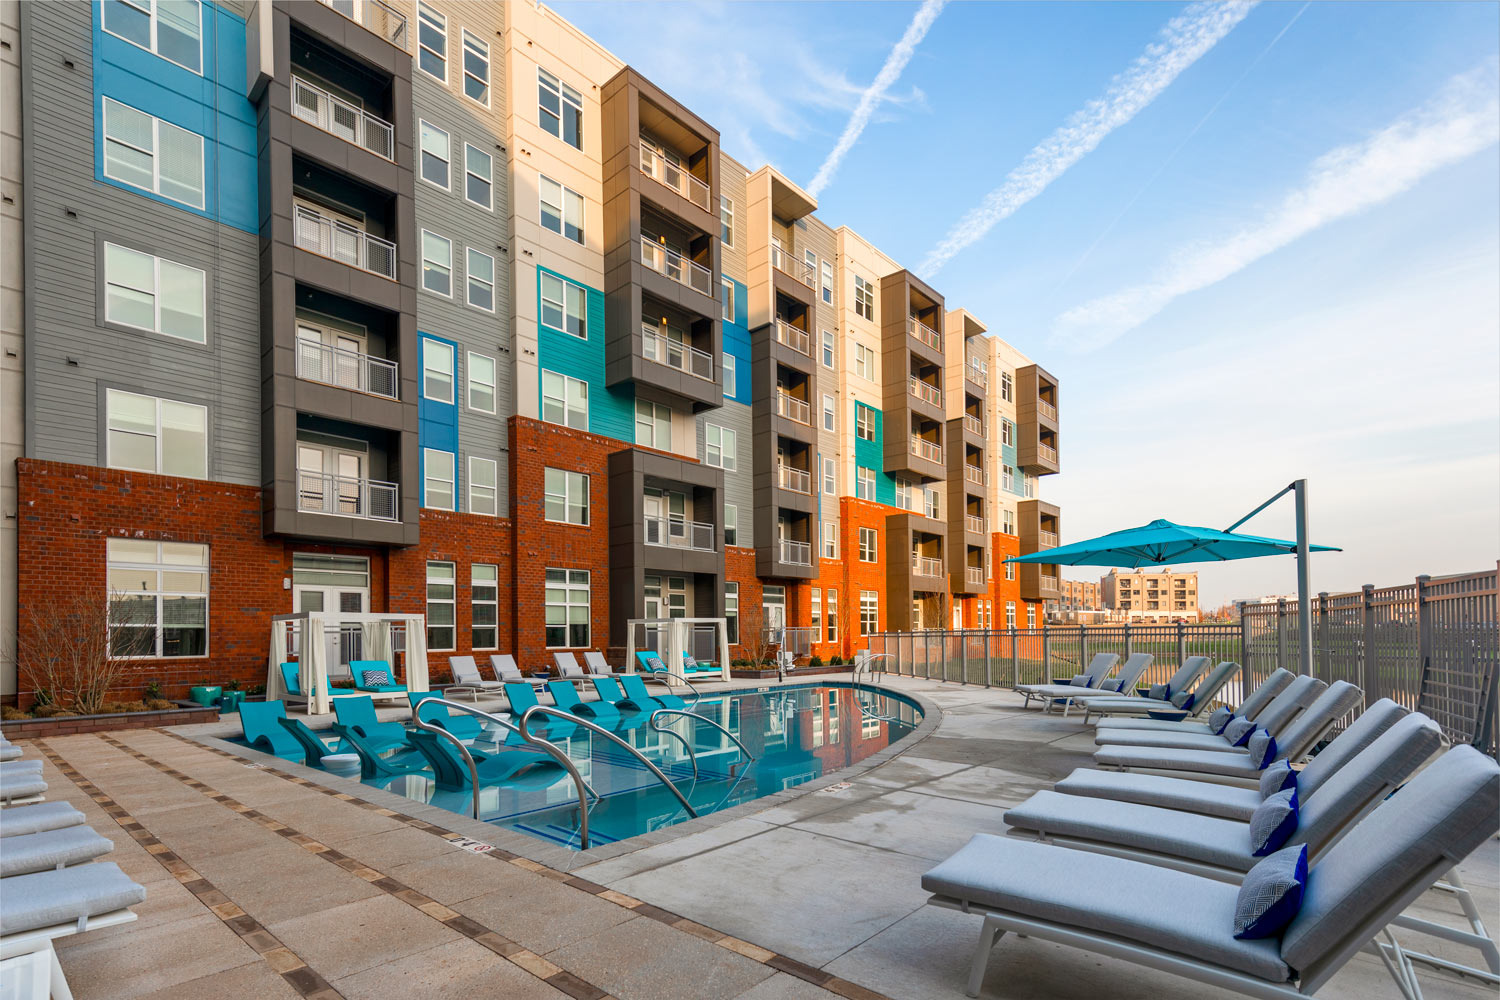 CBG builds The Smith, a Six-Story, 320-Unit Luxury Apartment Community with Amenities in King of Prussia, PA - Image #2